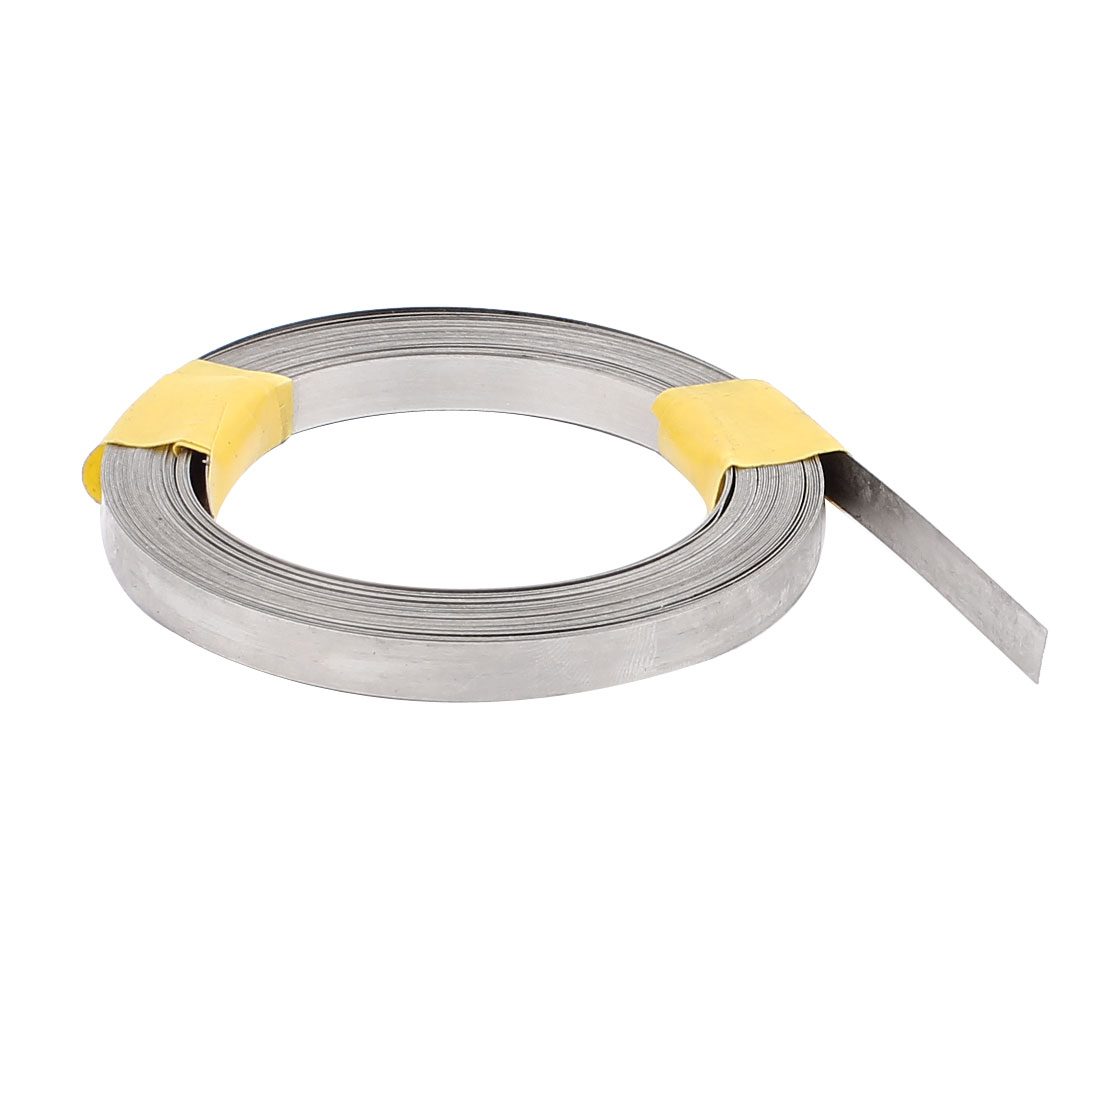 7.5M 24.6Ft 0.2x6mm Nichrome Flat Heater Wire for Heating Elements